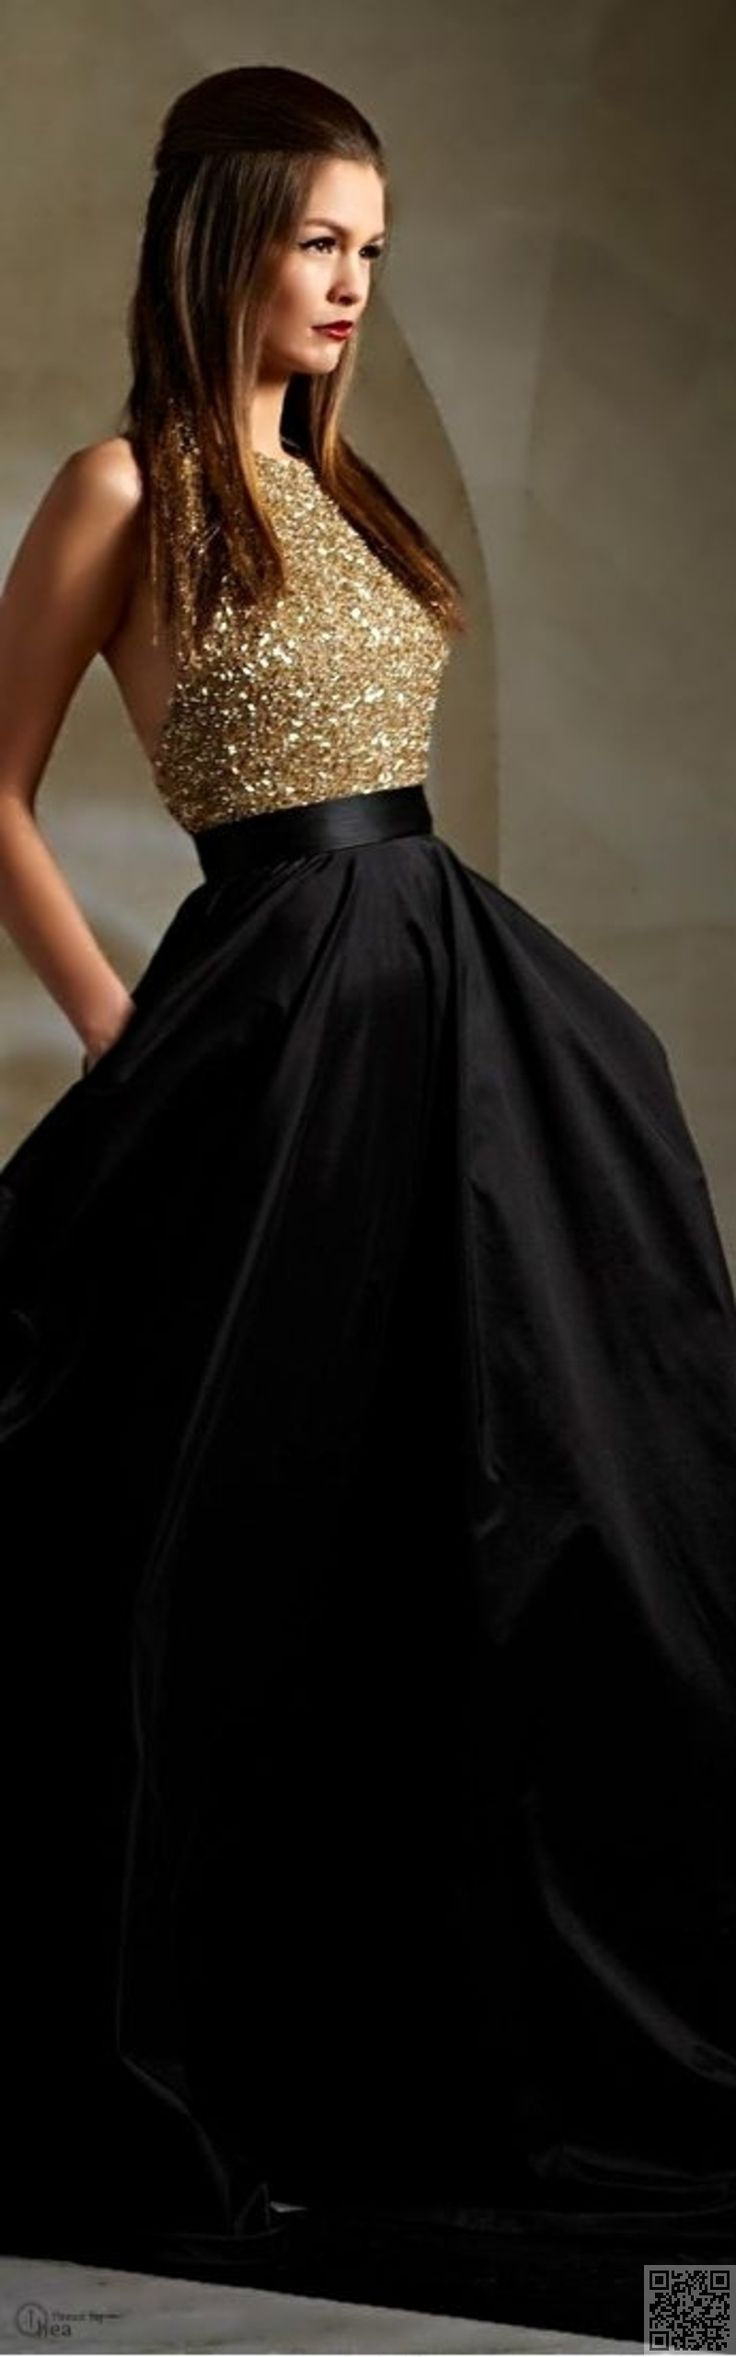 11. With a Long #Skirt - 21 Jaw Dropping #Holiday Dresses You'll Love ... → #Fashion #Backless